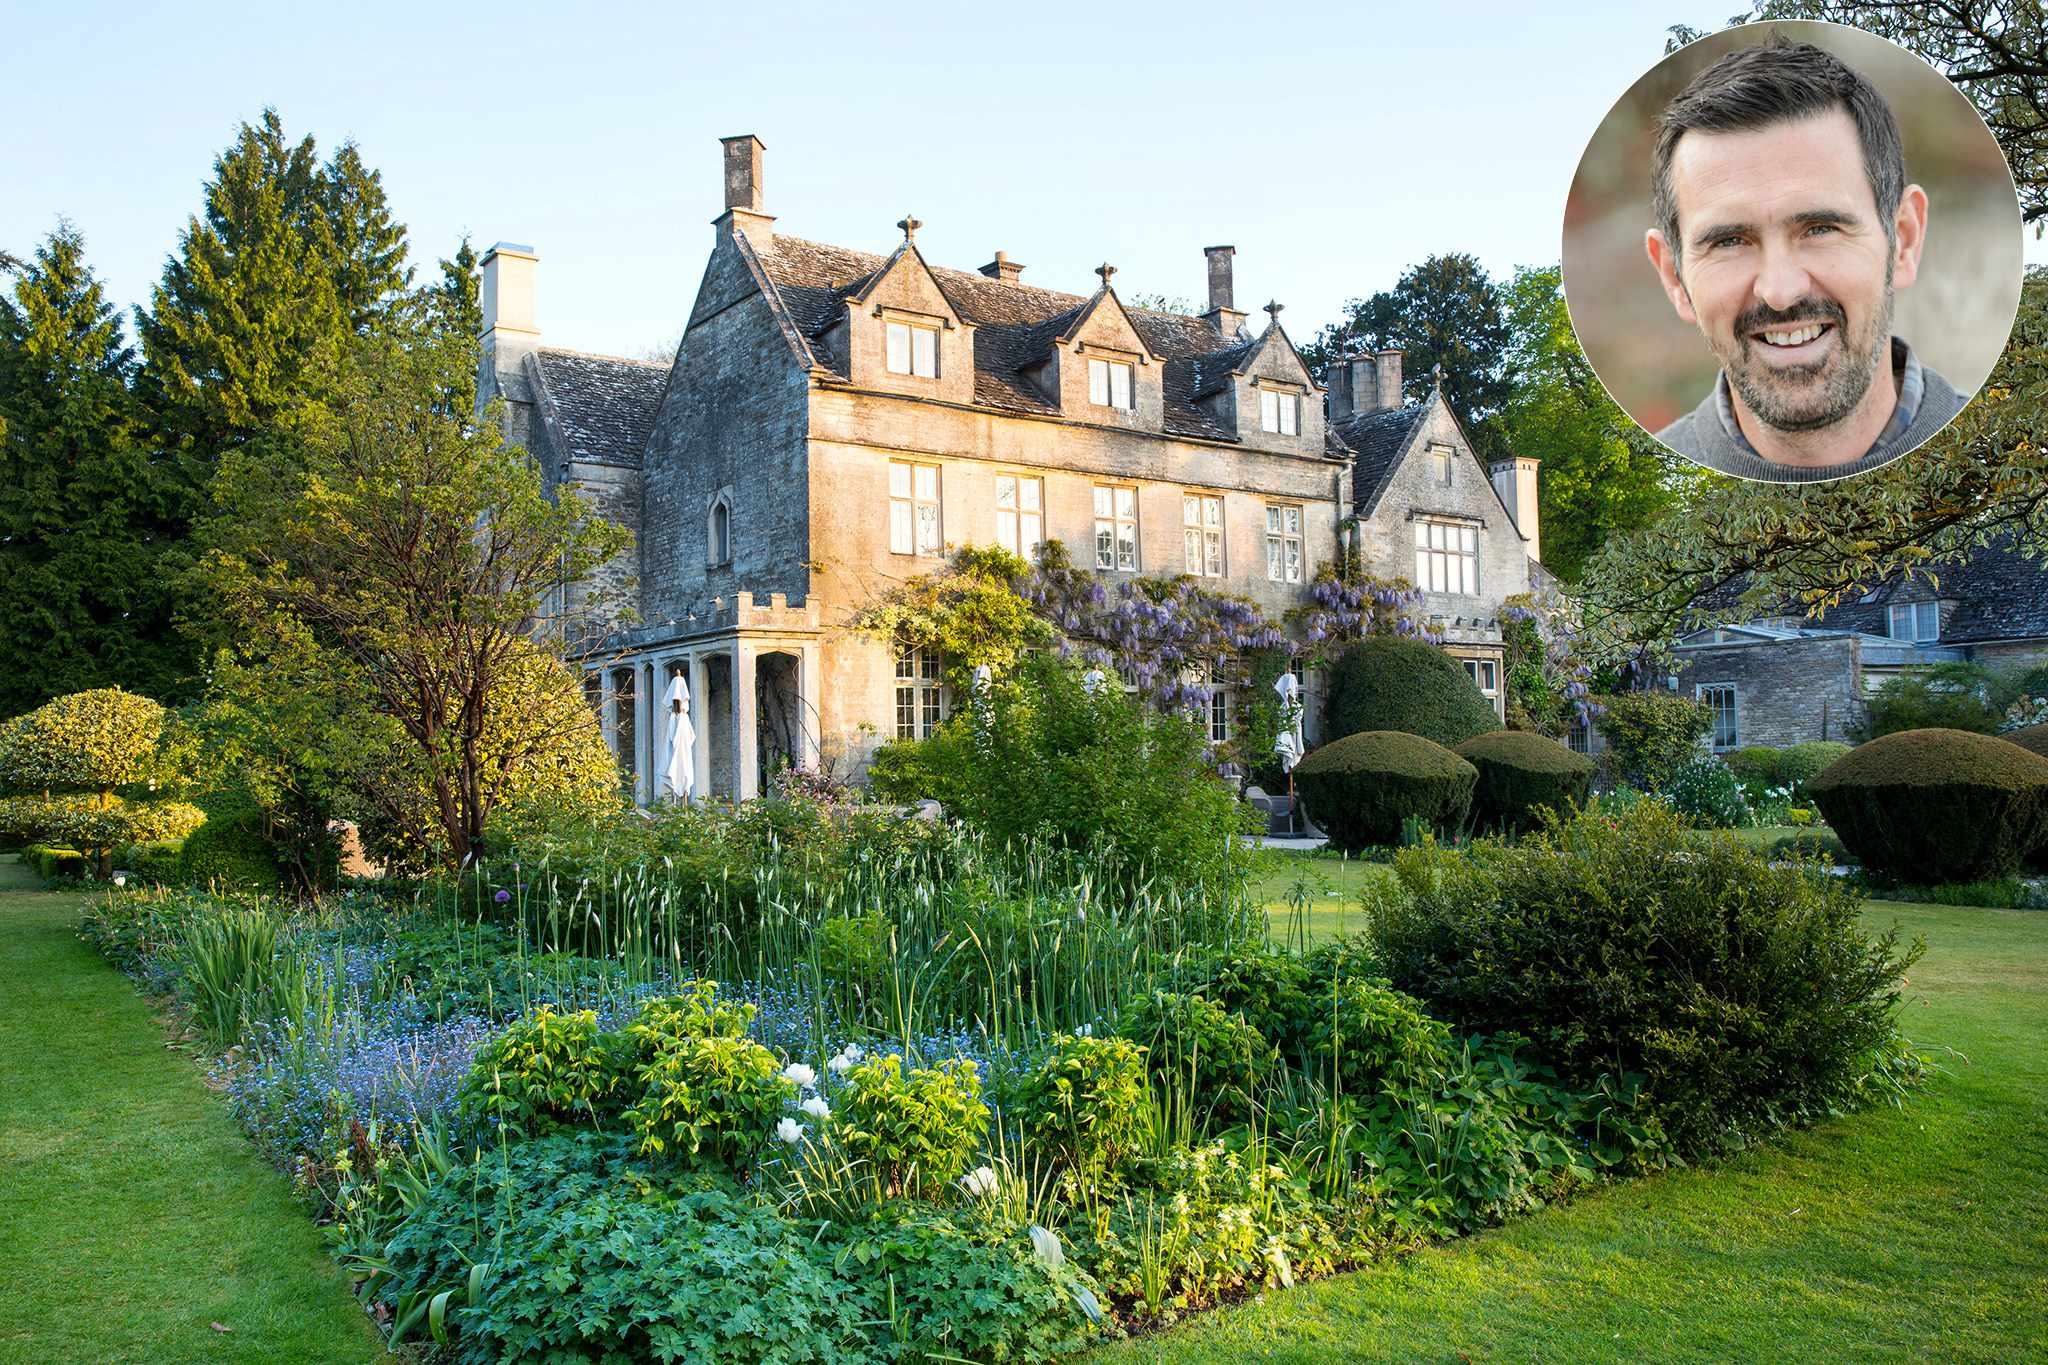 meet-adam-cotswolds-tour-barnsley-house-offer-card-2048-1365